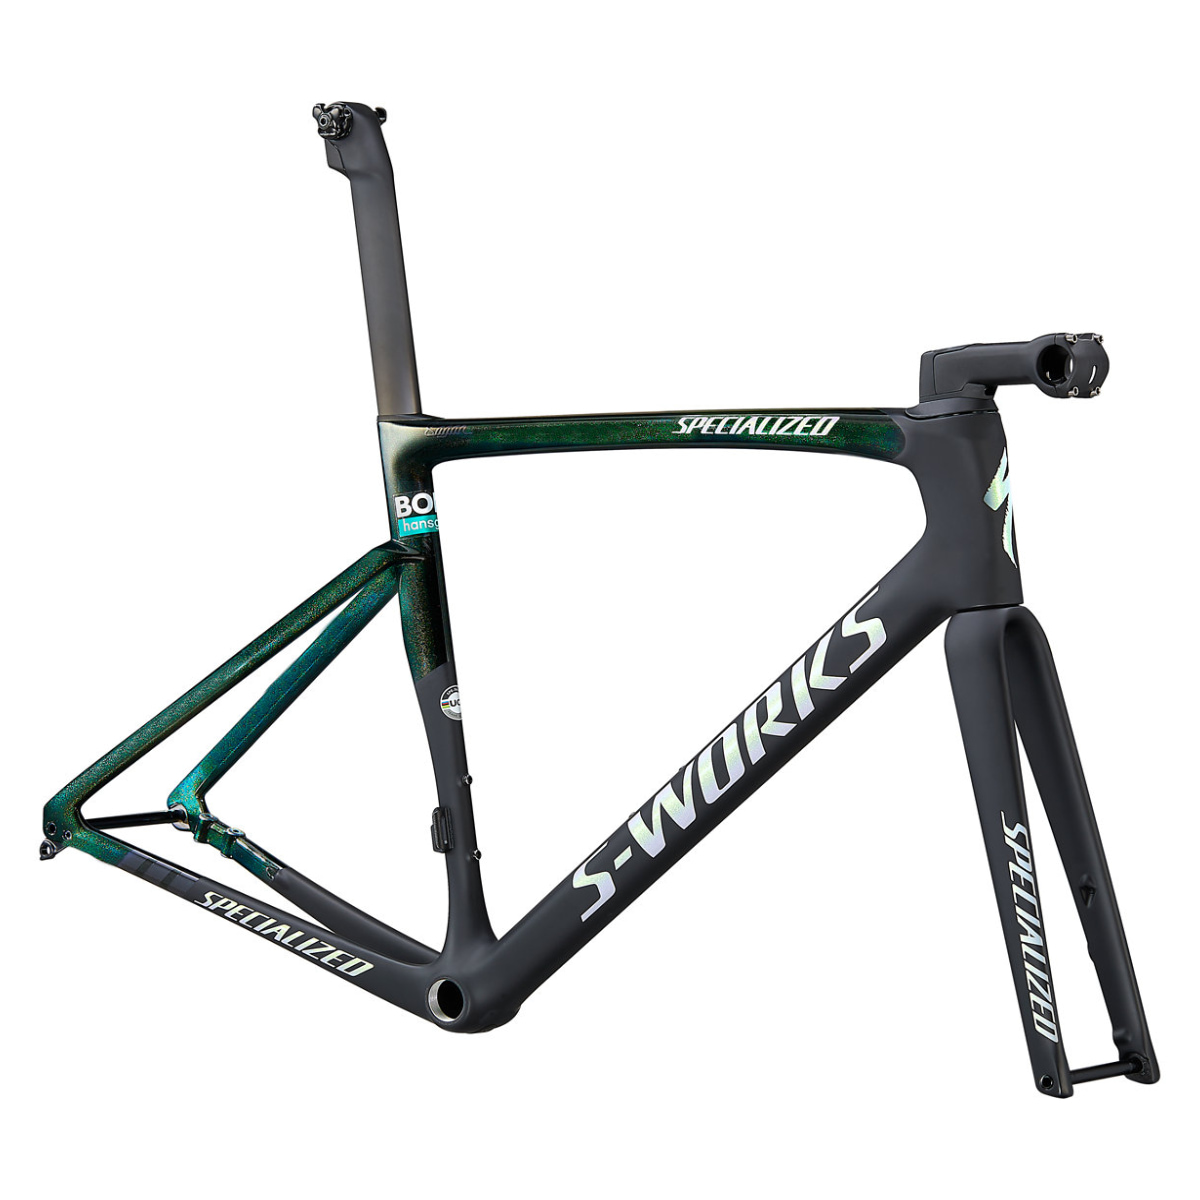 CADRE SPECIALIZED TARMAC S-WORKS SL7 DISC SAGAN COLLECTION